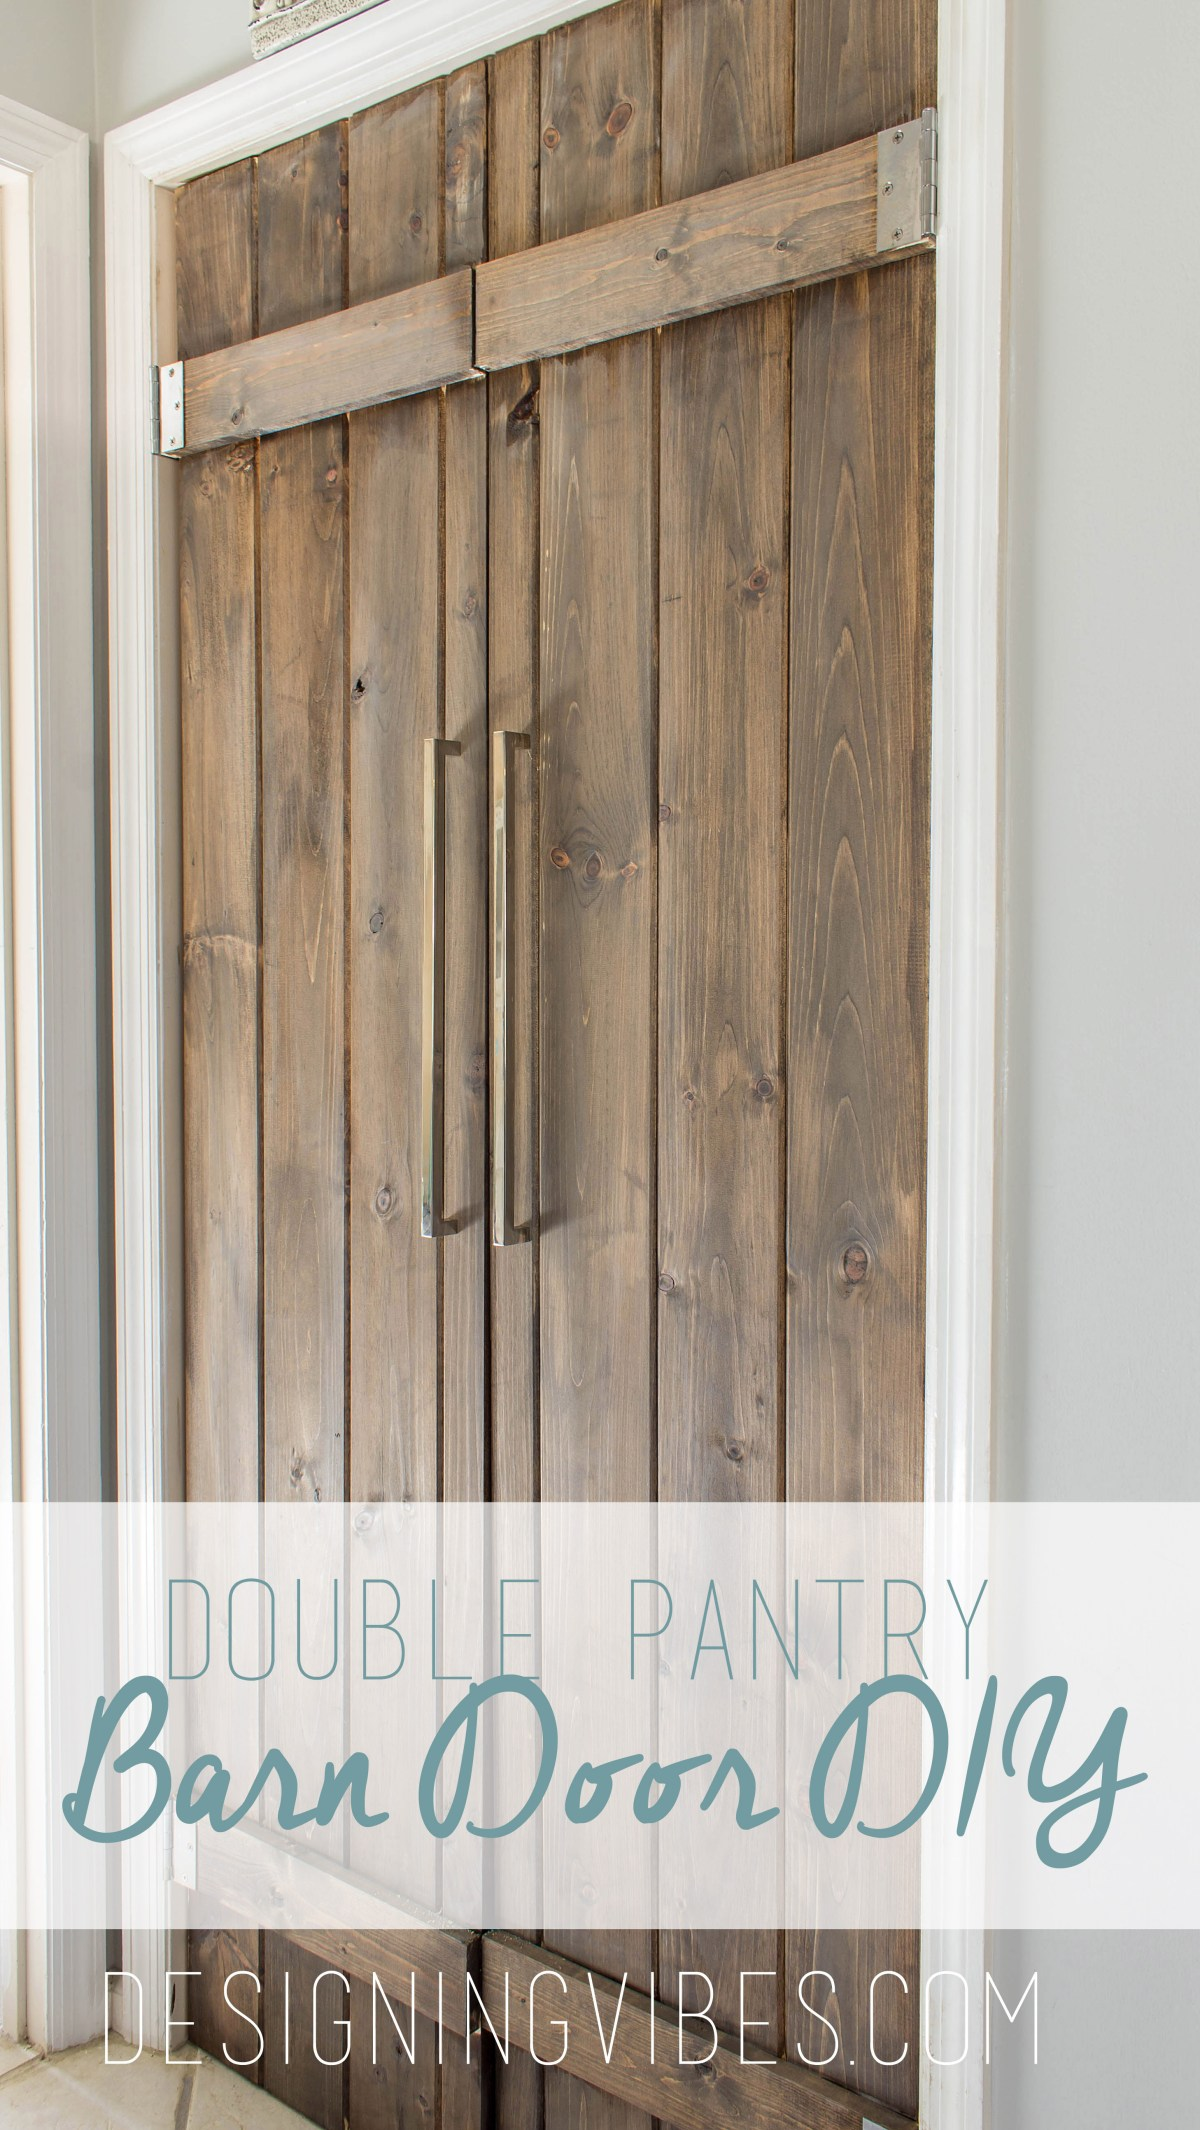 Double Pantry Barn Door Diy Under 90